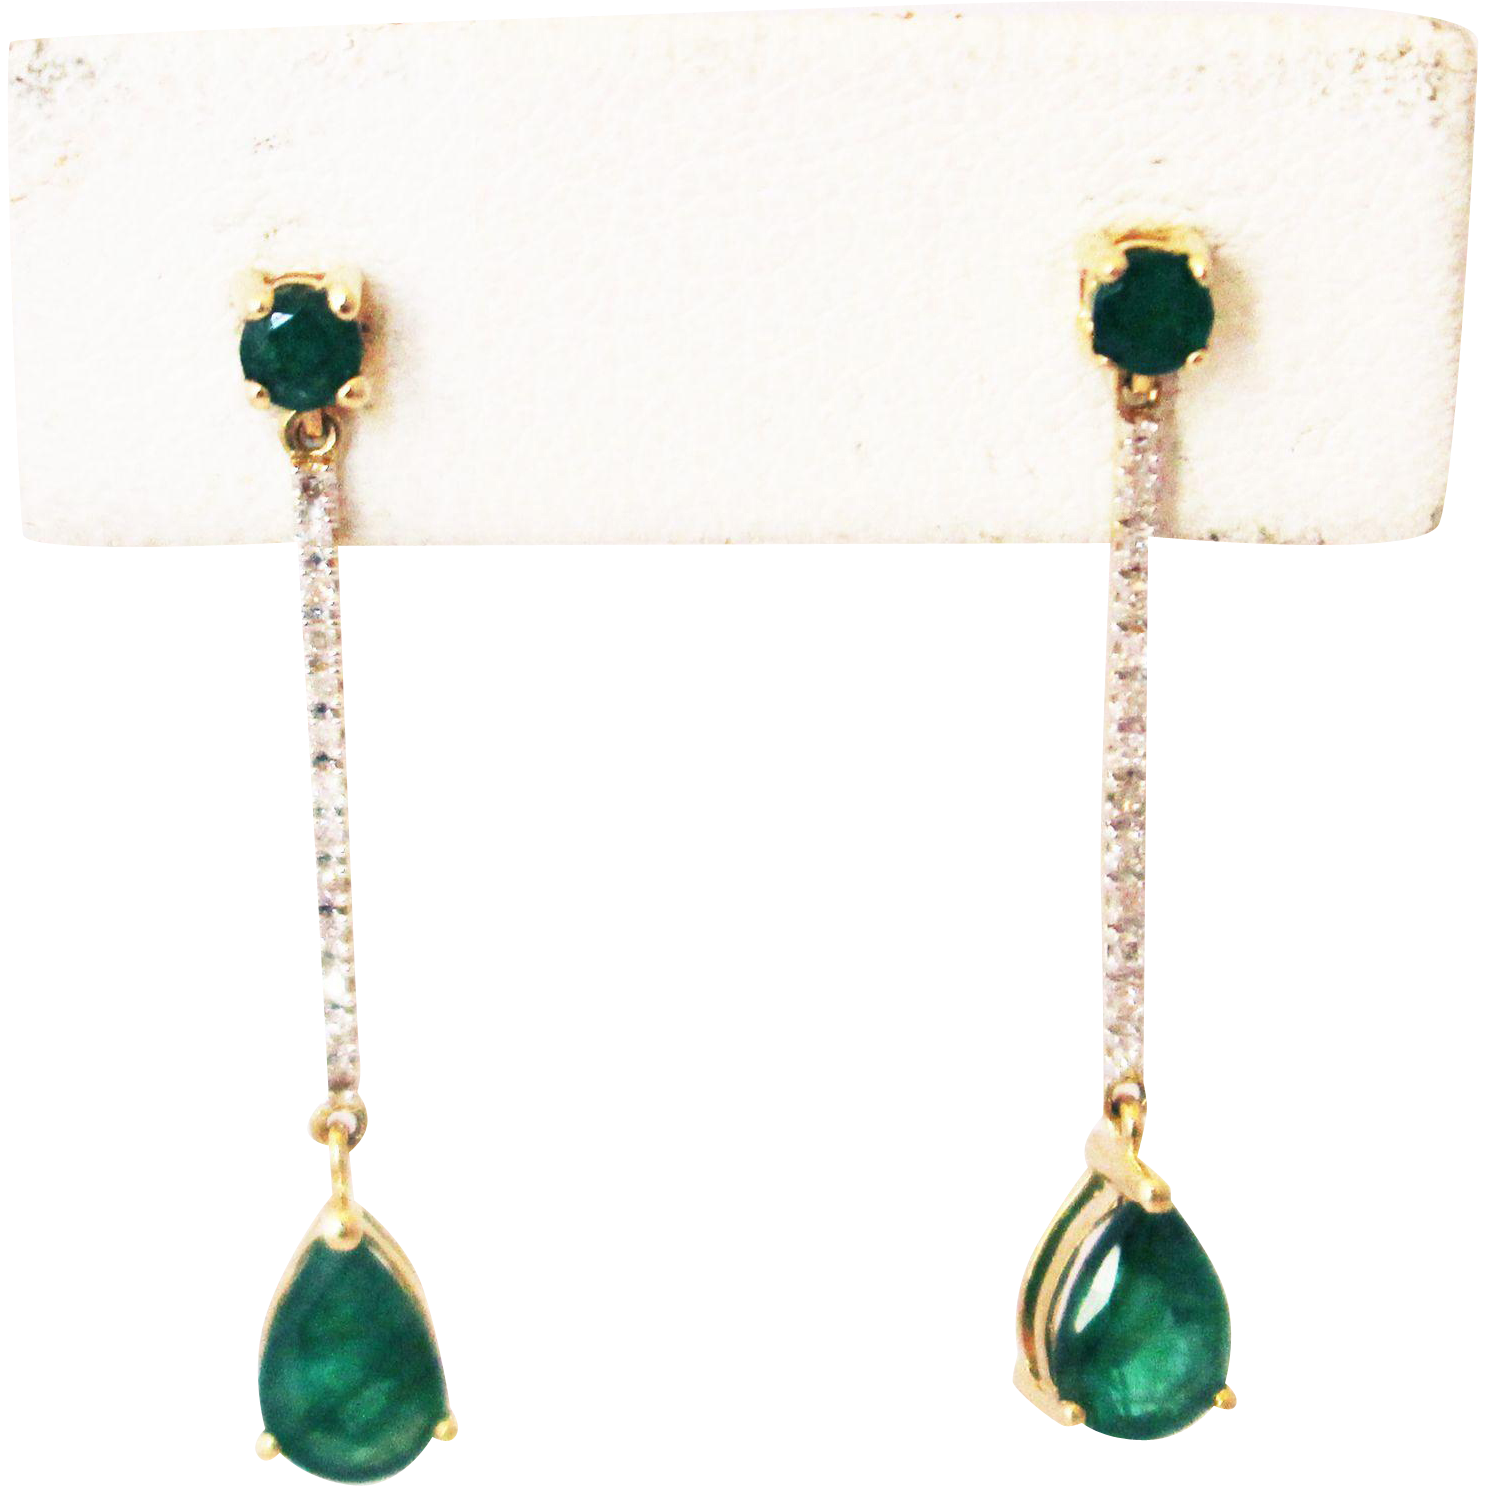 diamonds ct and sterling silver with natural itm emerald in gold earrings